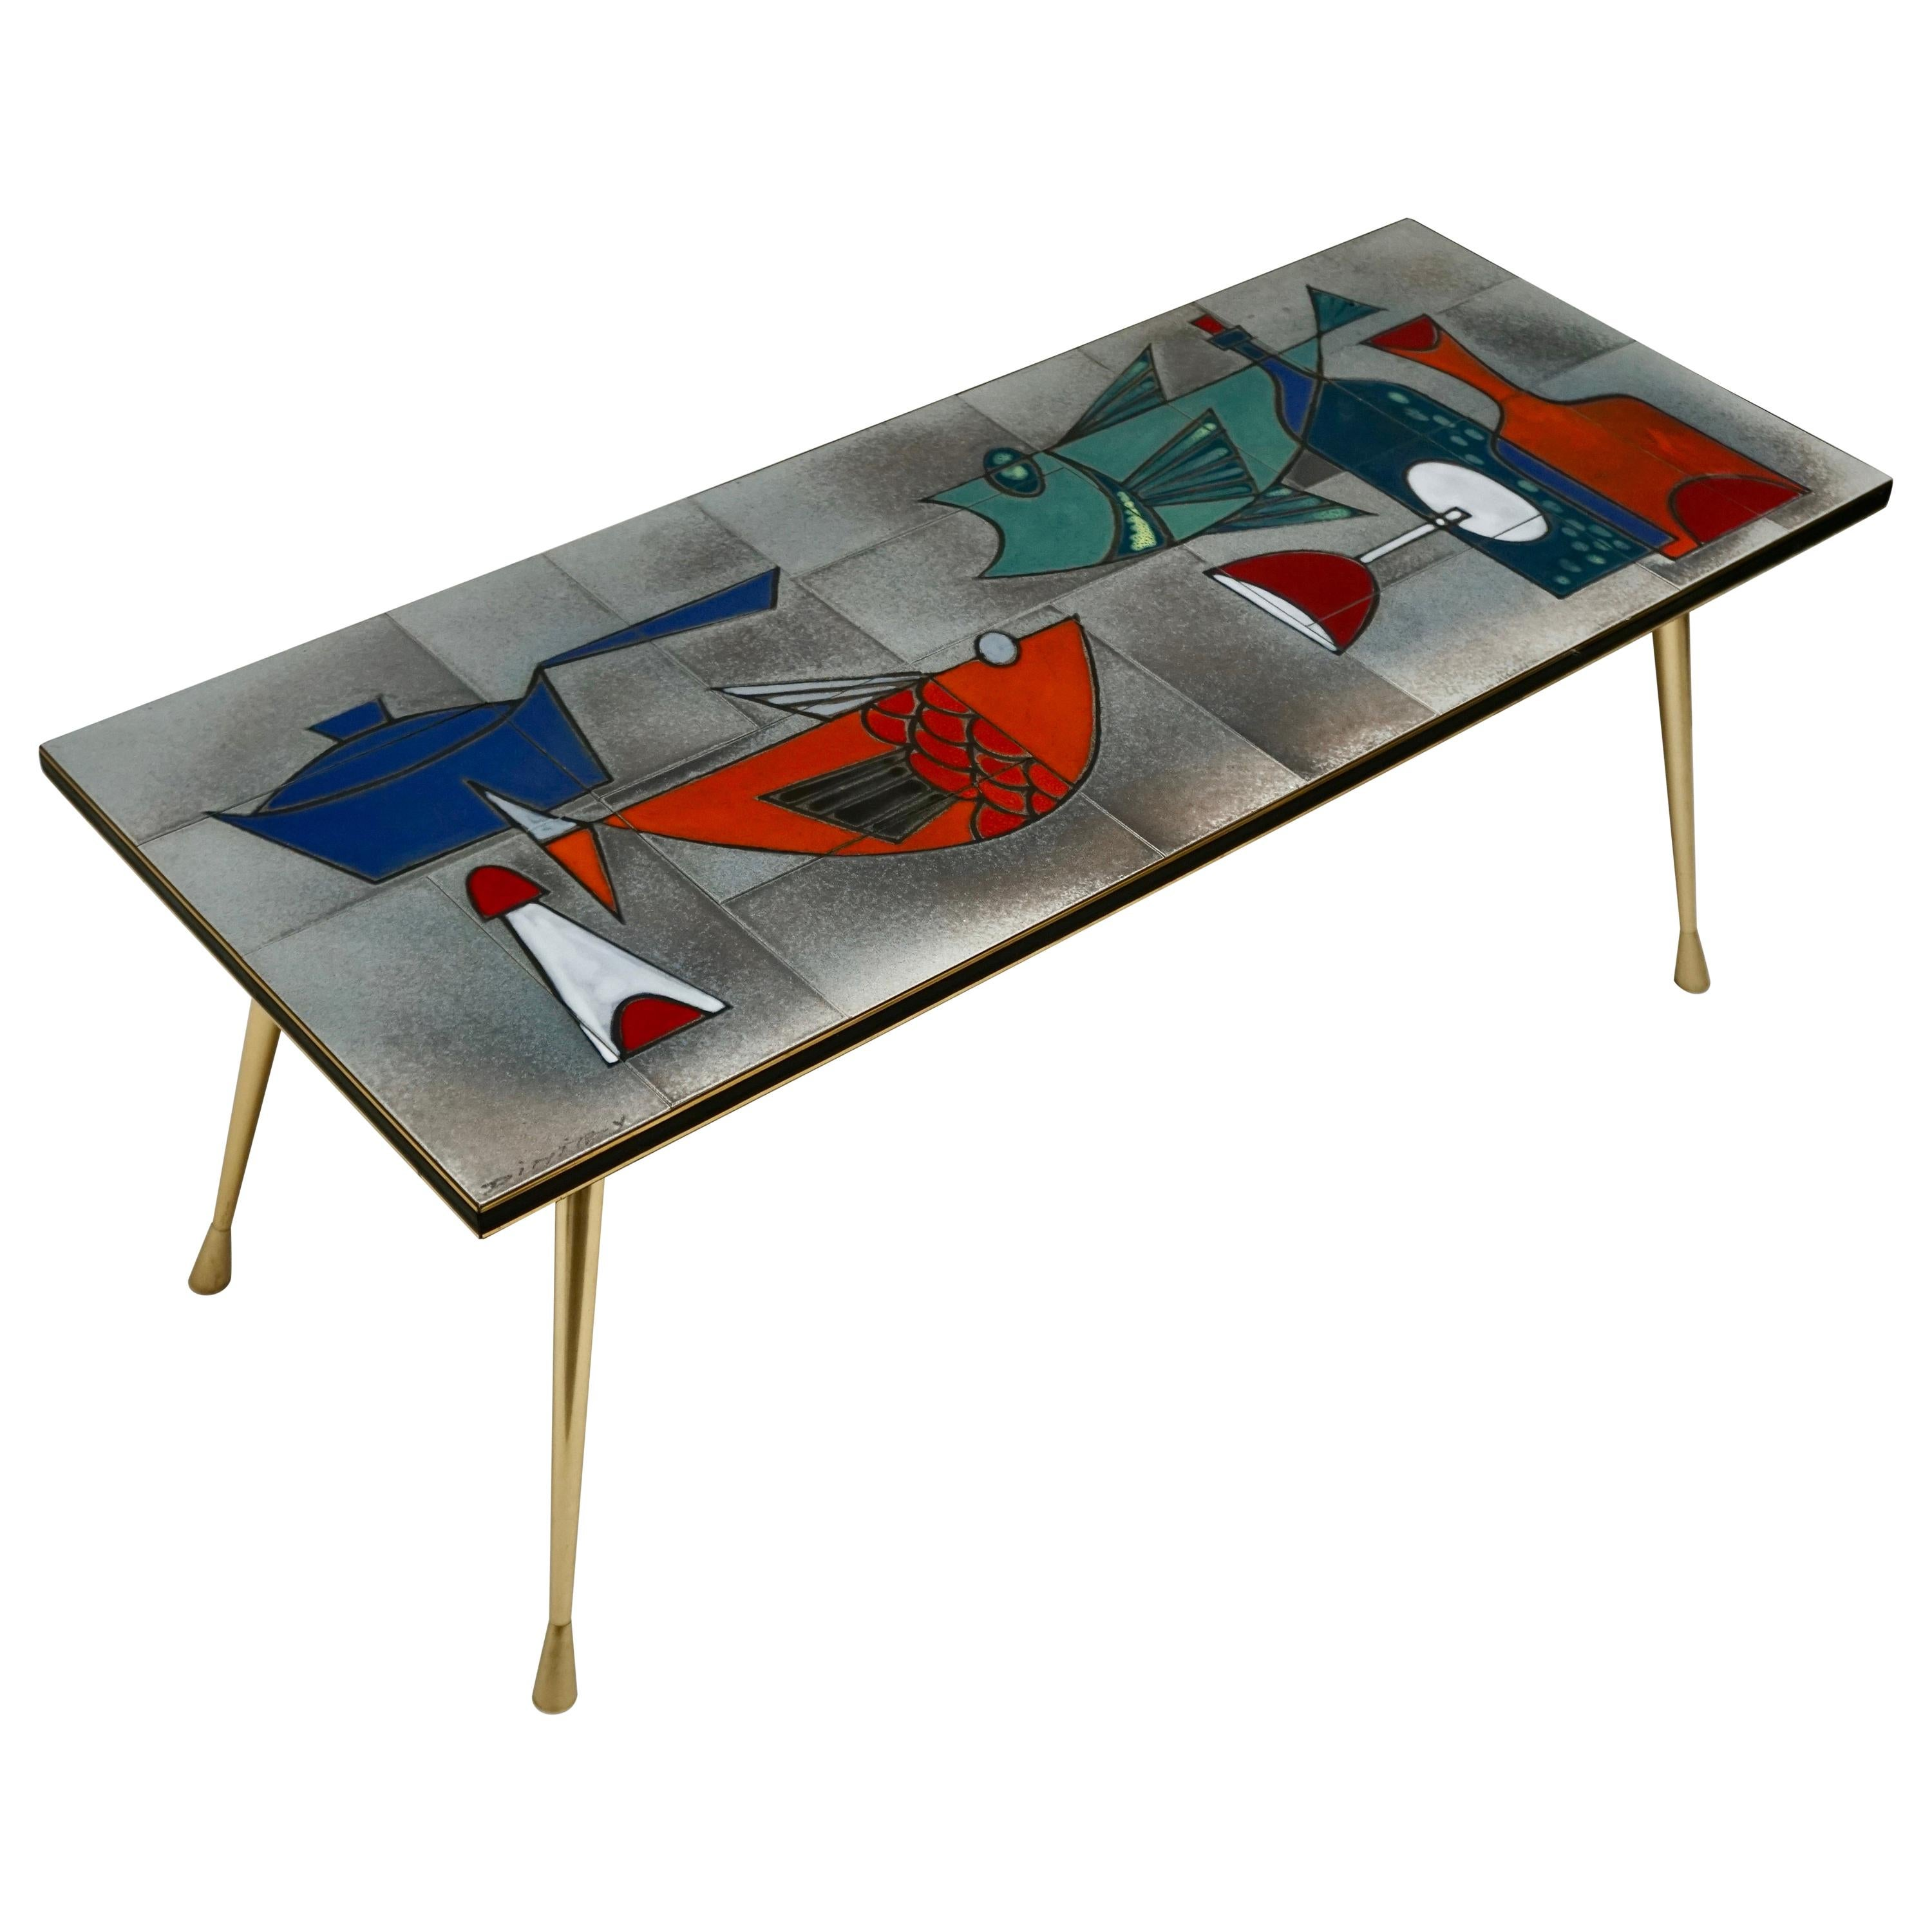 Ceramic Glazed Tiles Coffee Table Decorated with Fish and Bottles